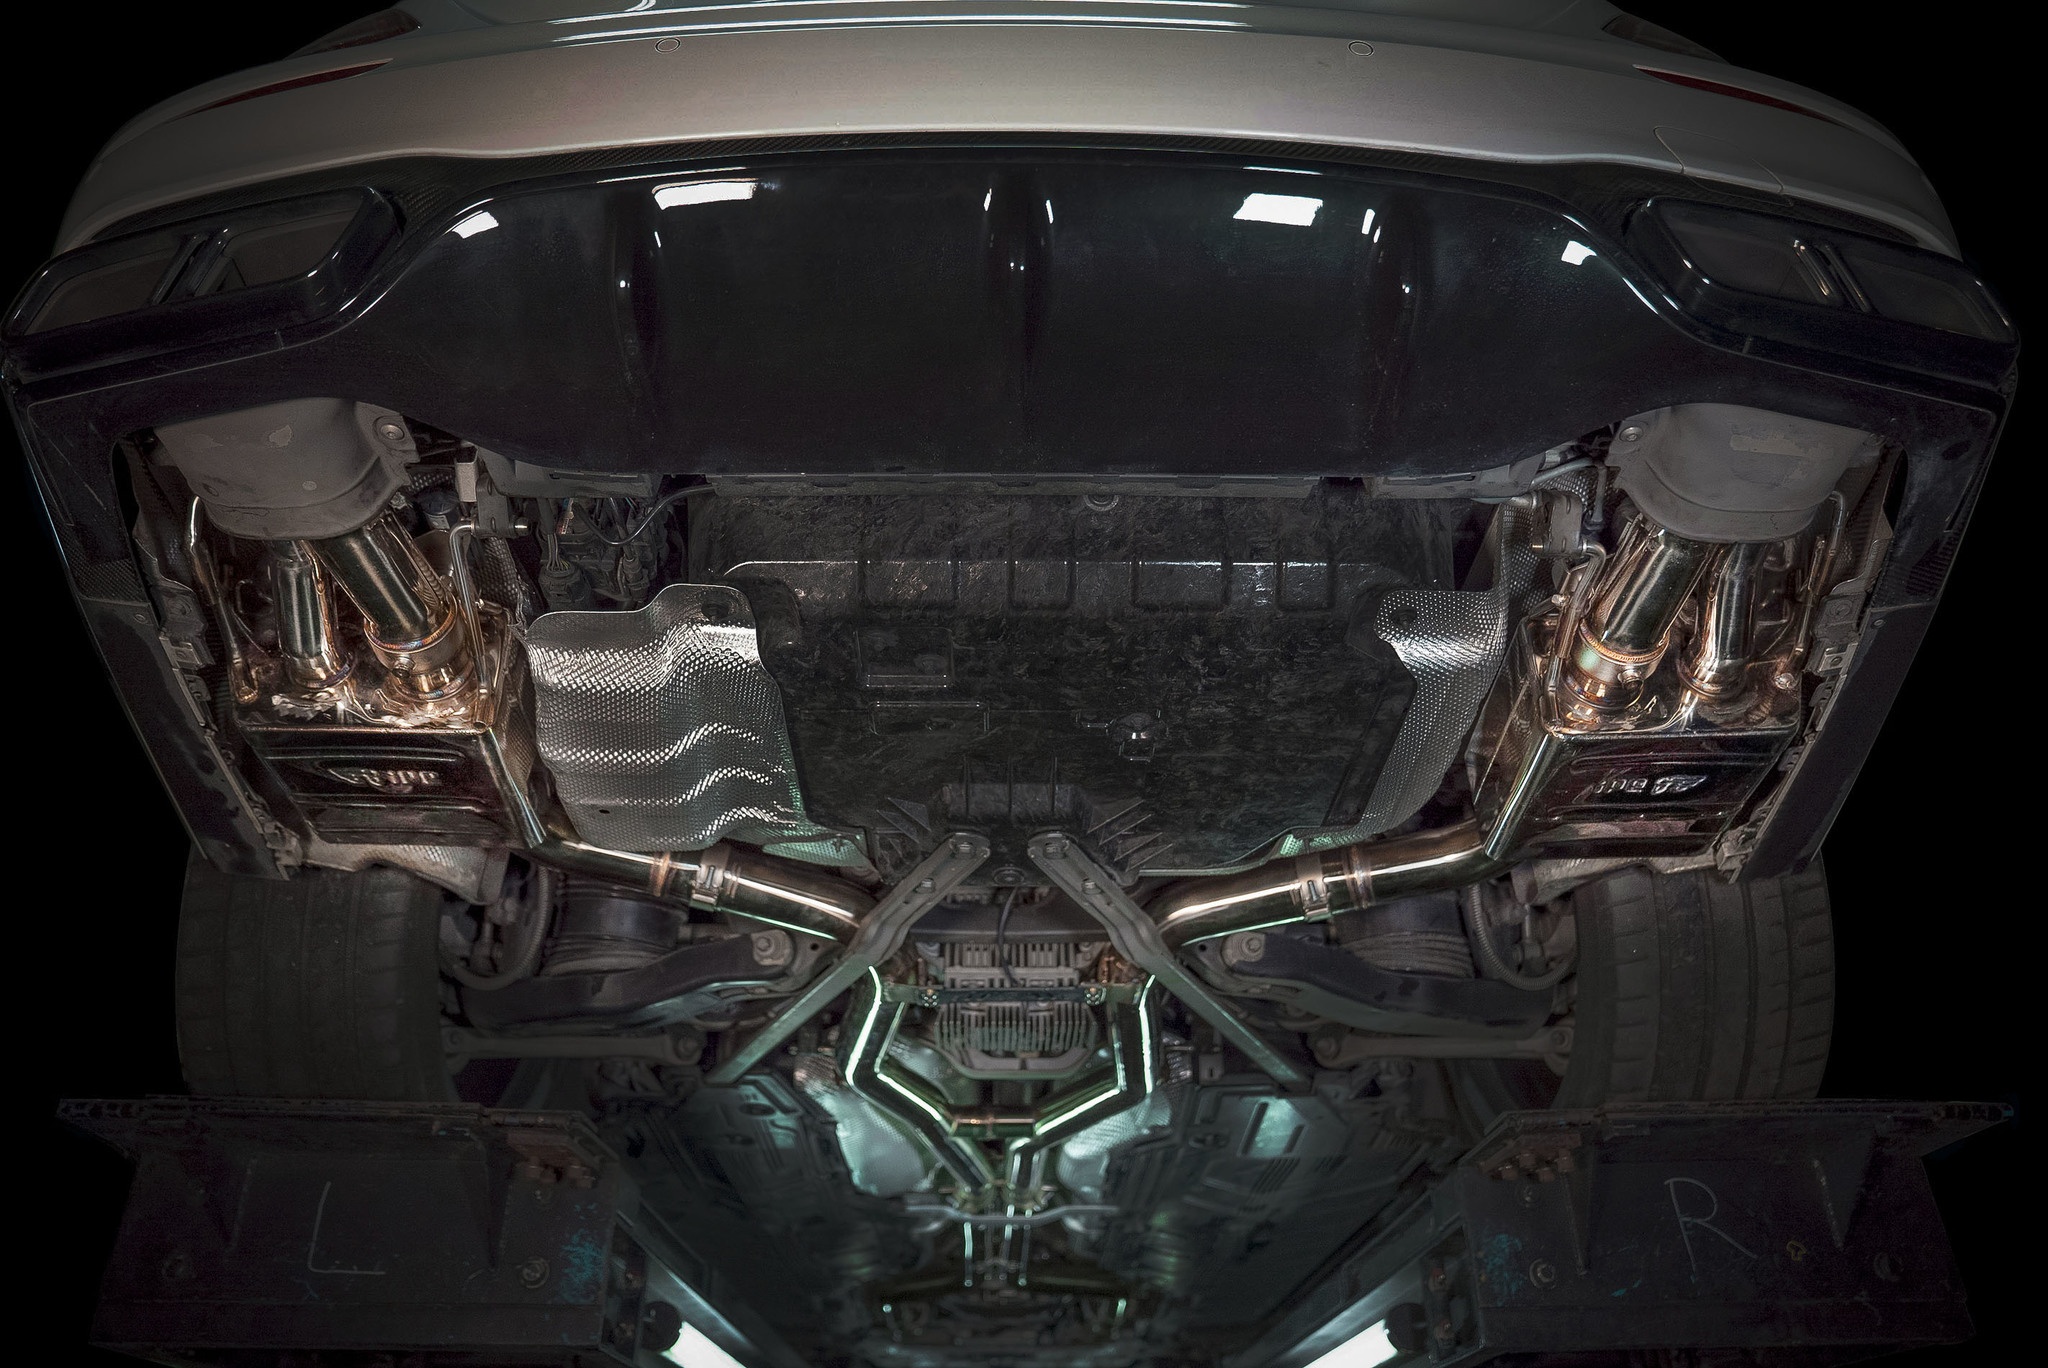 IPE exhaust system for Mercedes-Benz E63 / E63 S (W213)